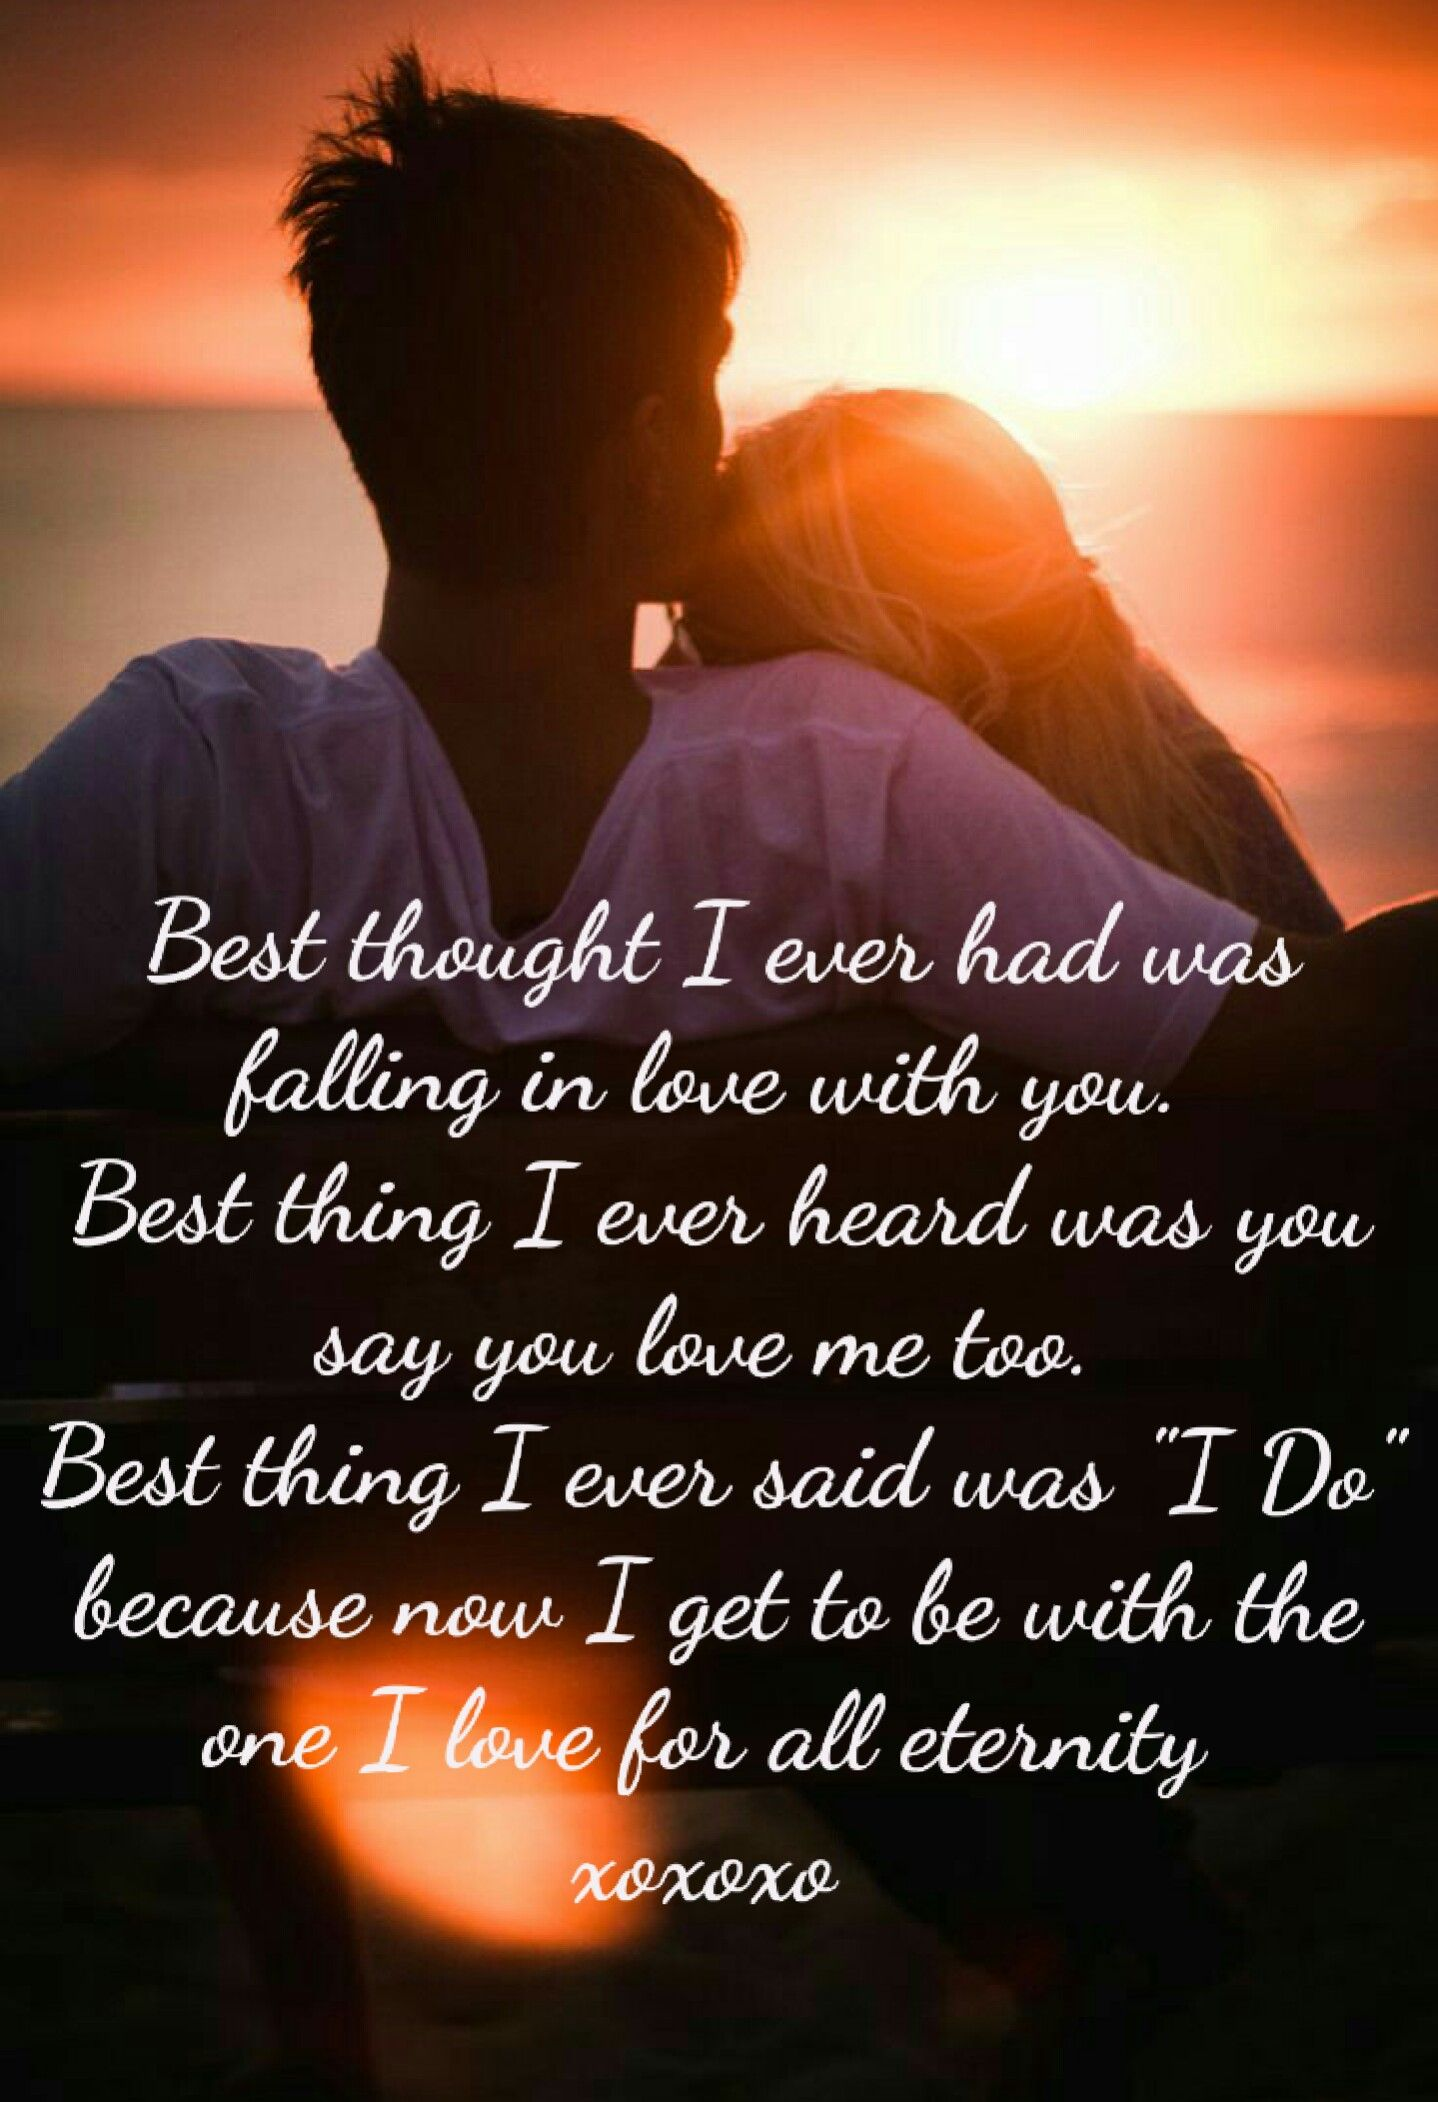 Your My World Things I Love To Tell Her Romantic Love Quotes